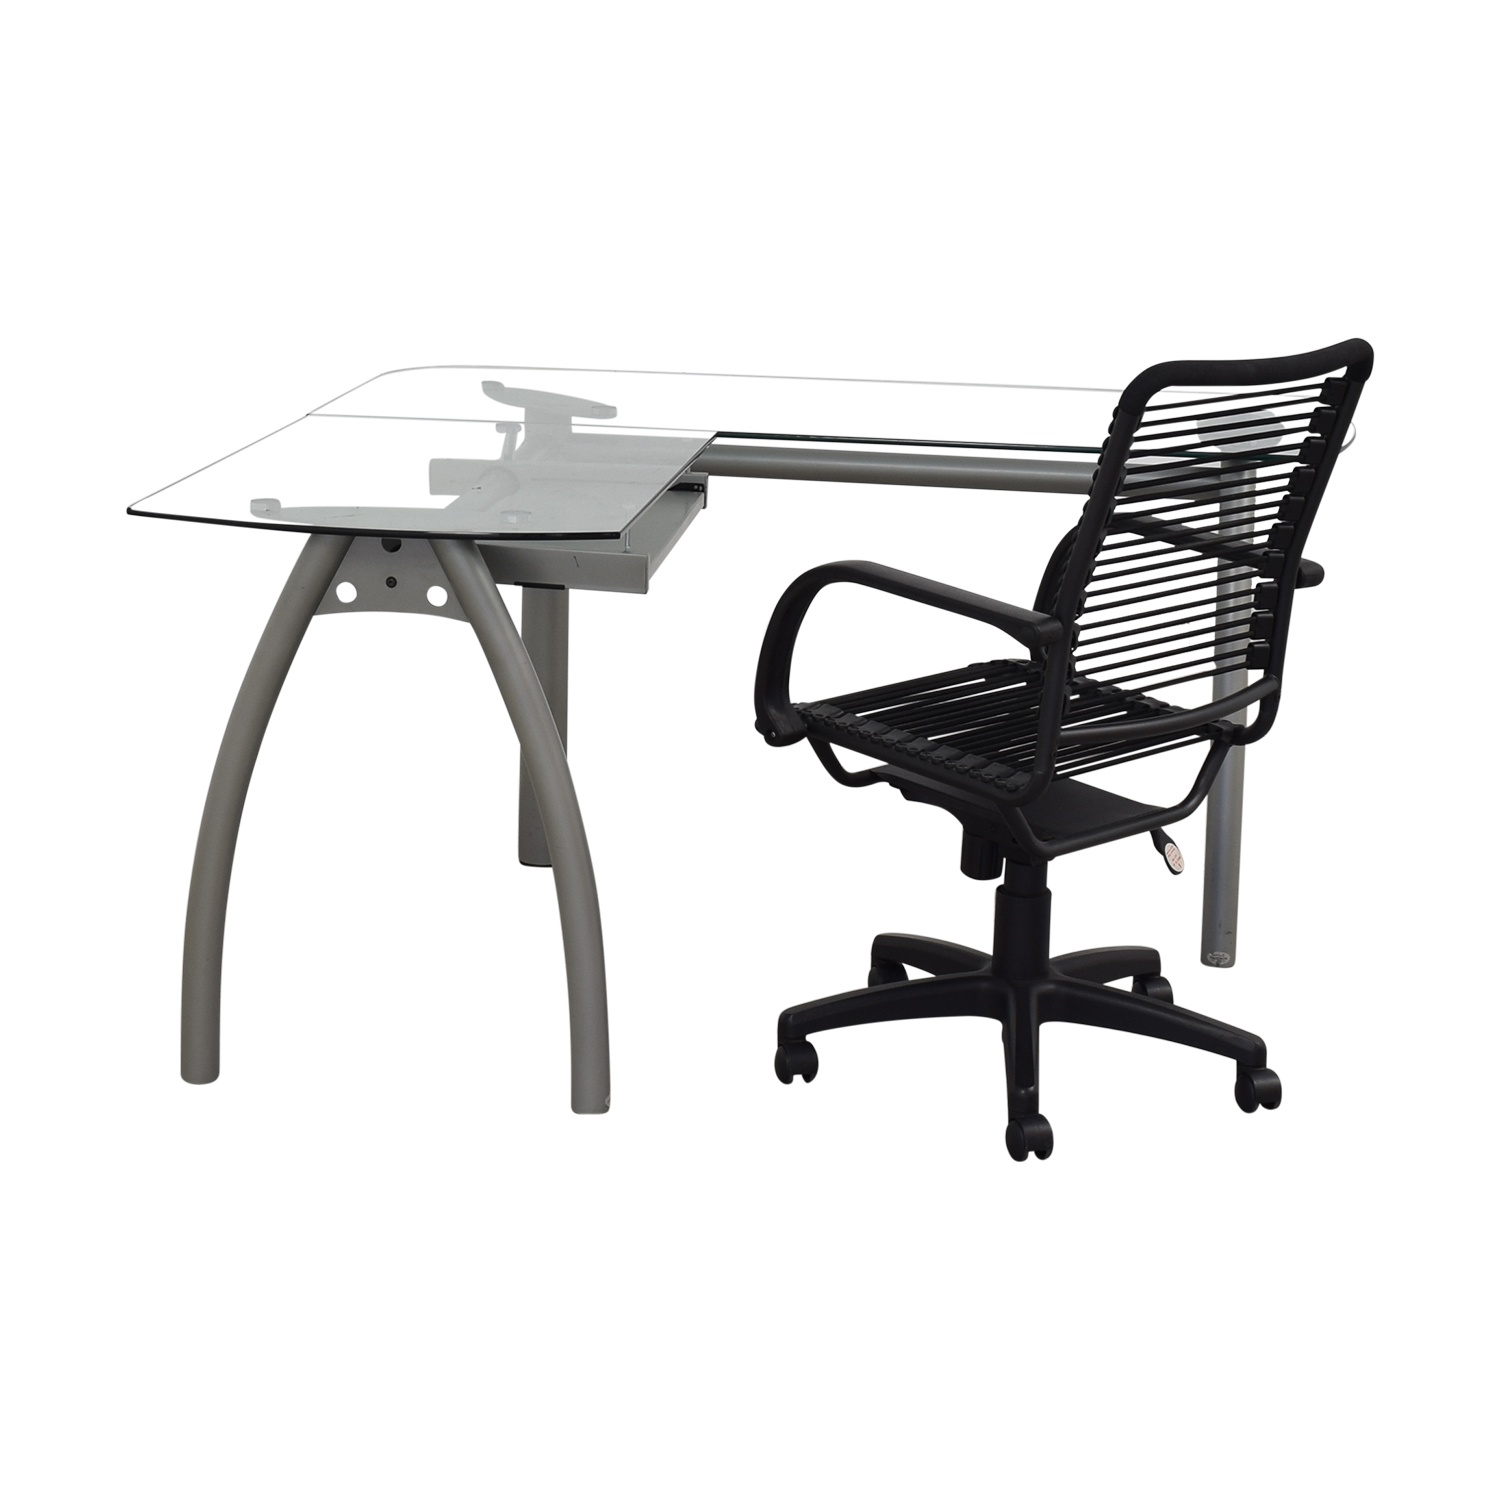 L-Shaped Glass and Metal Desk with Chair / Home Office Desks